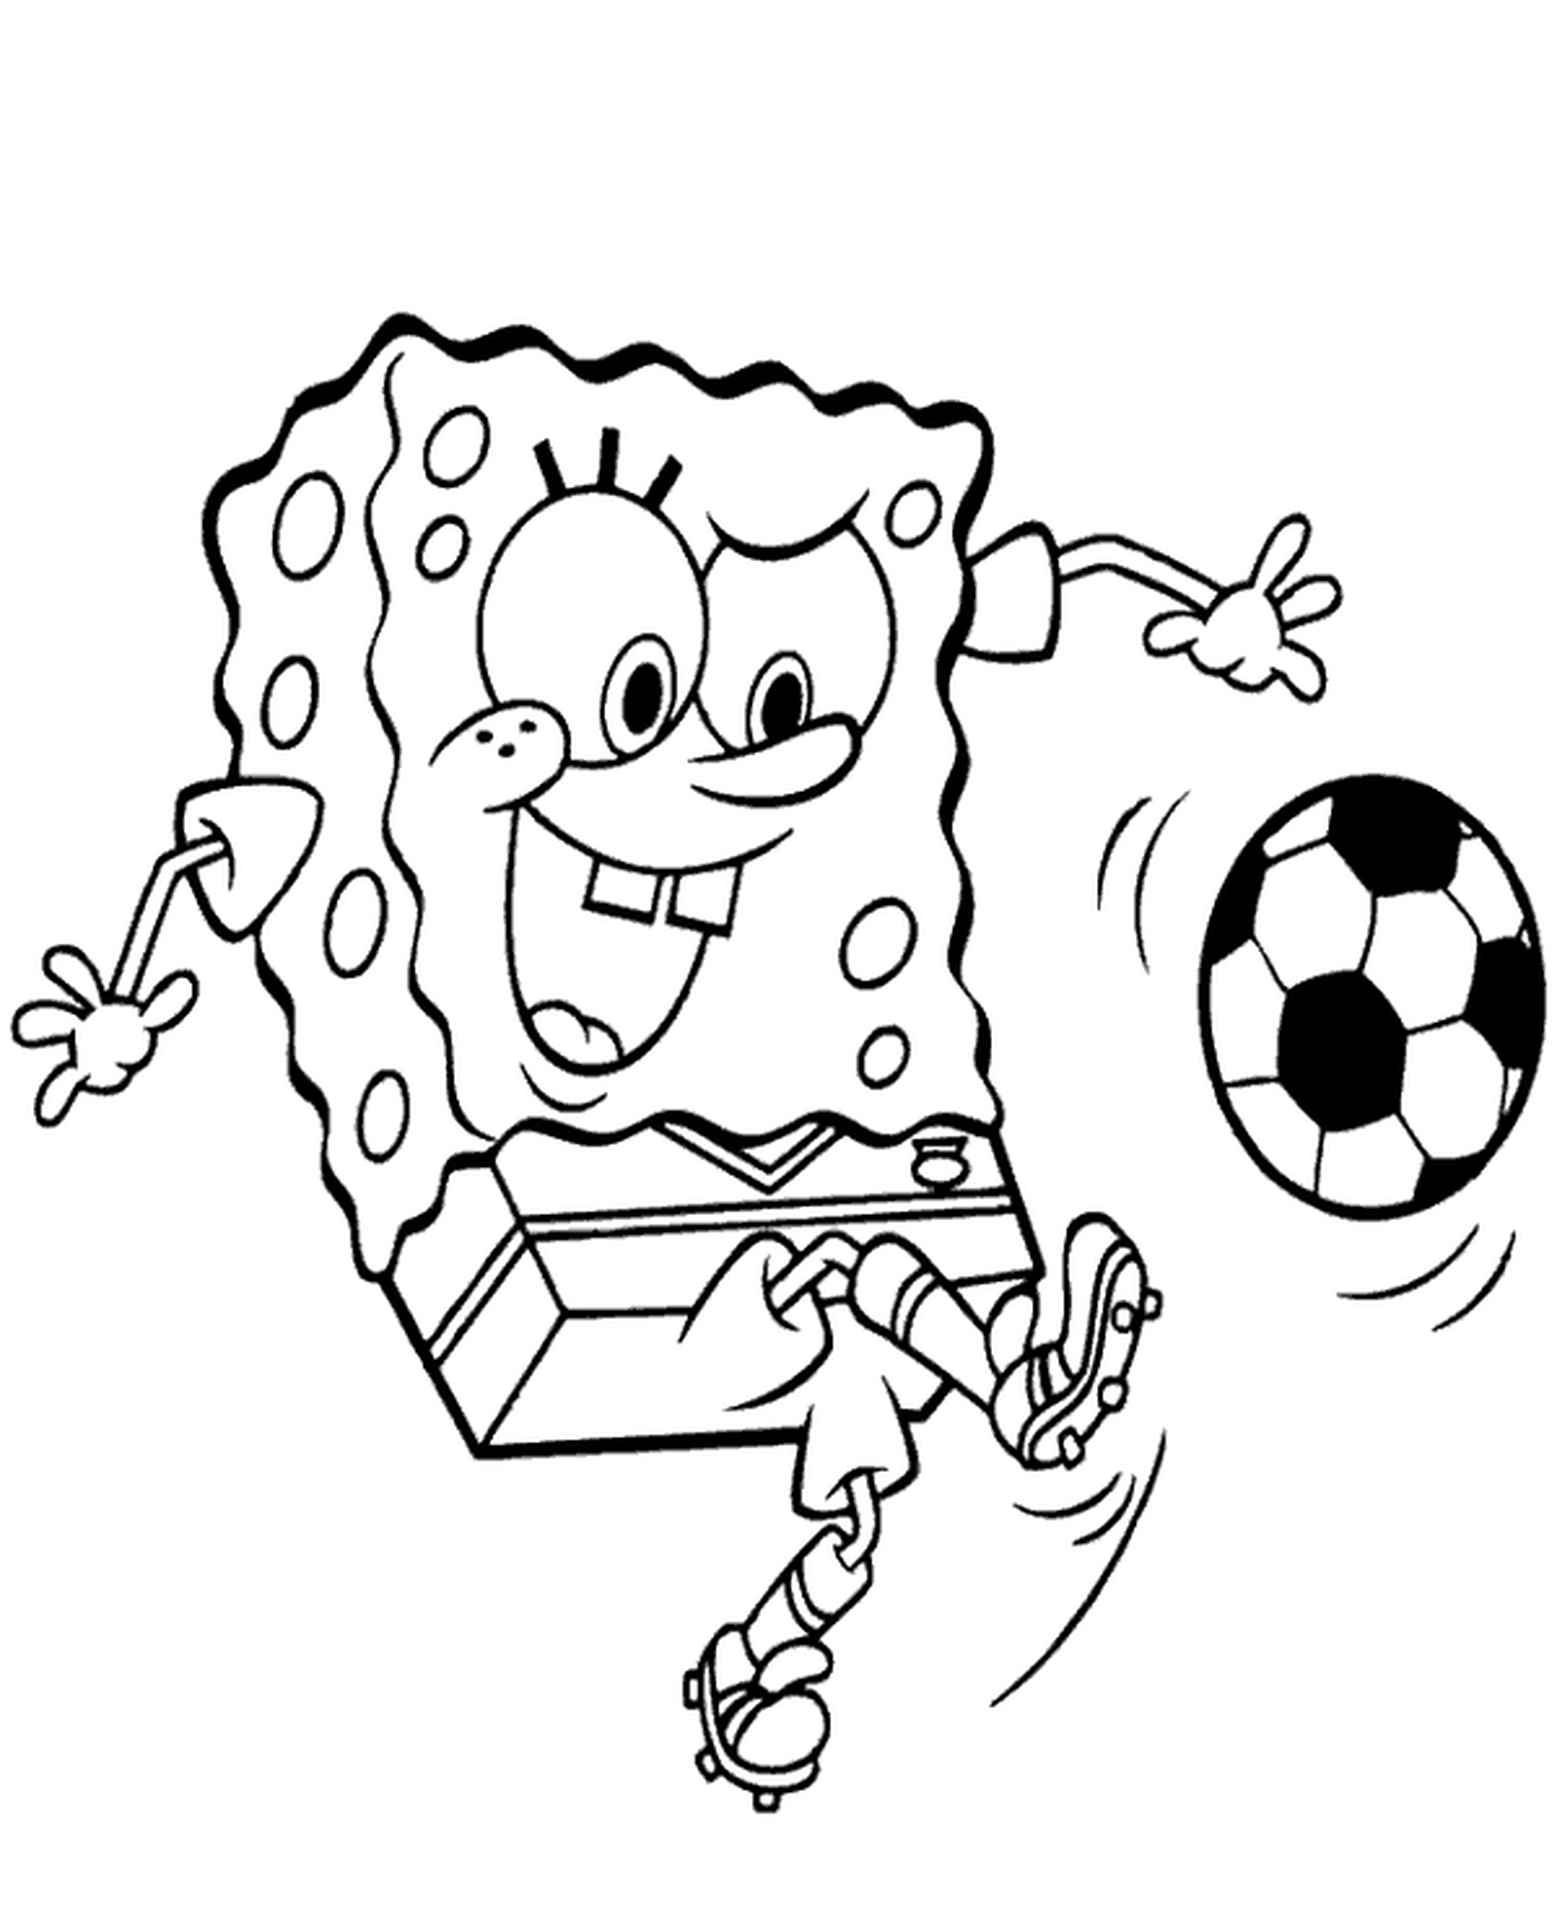 Spongebob Has Fun Playing Soccer Coloring Page